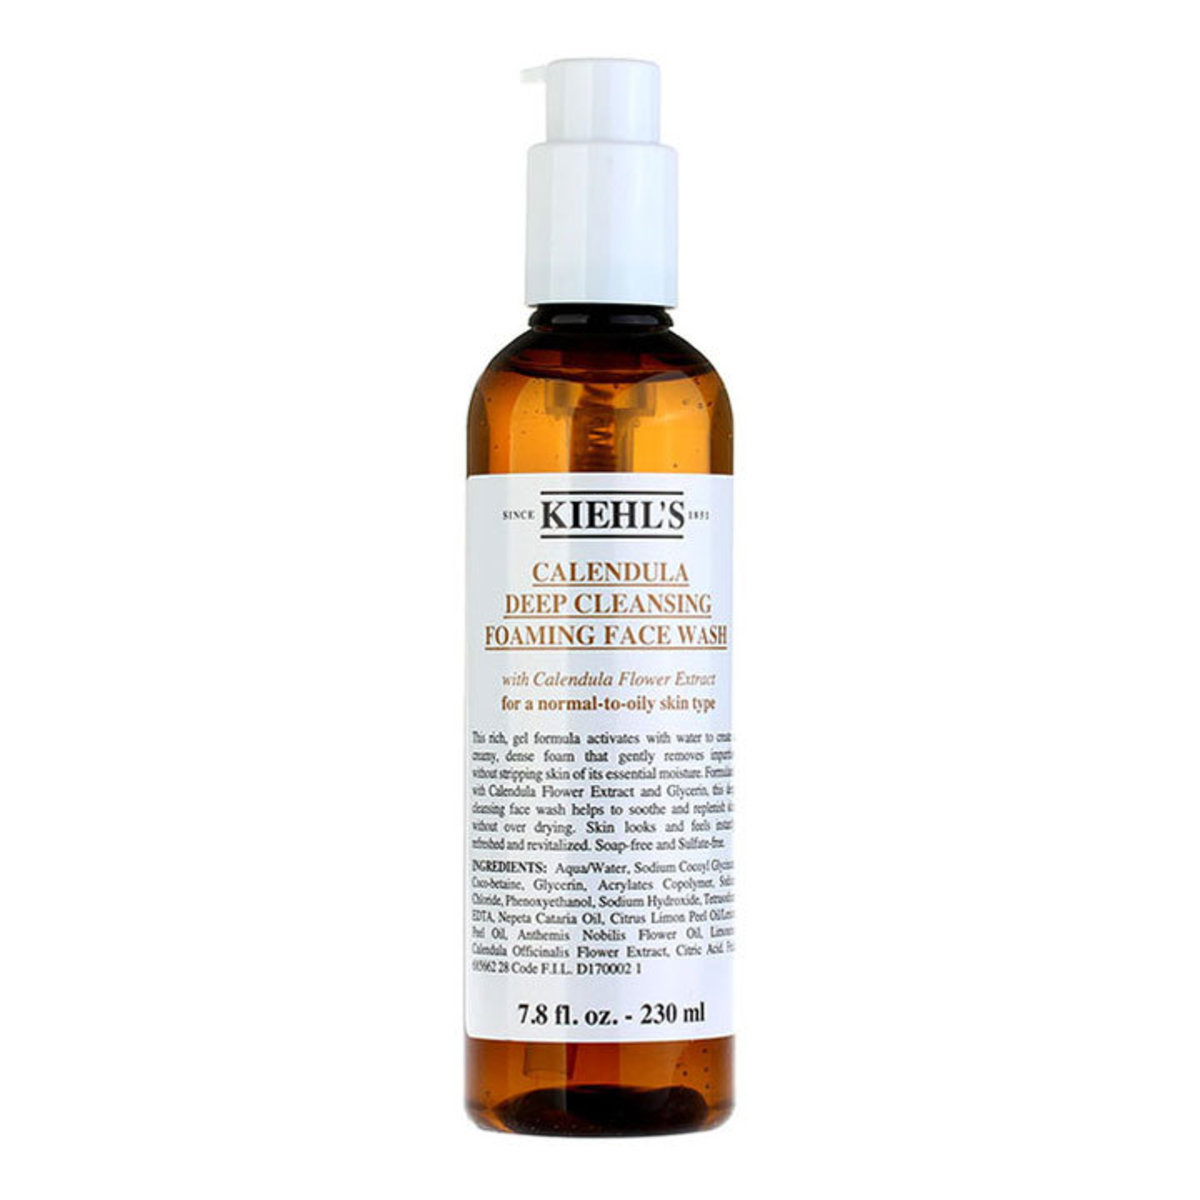 Calendula Deep Cleansing Foaming Face Wash 230ml (Parallel Import)